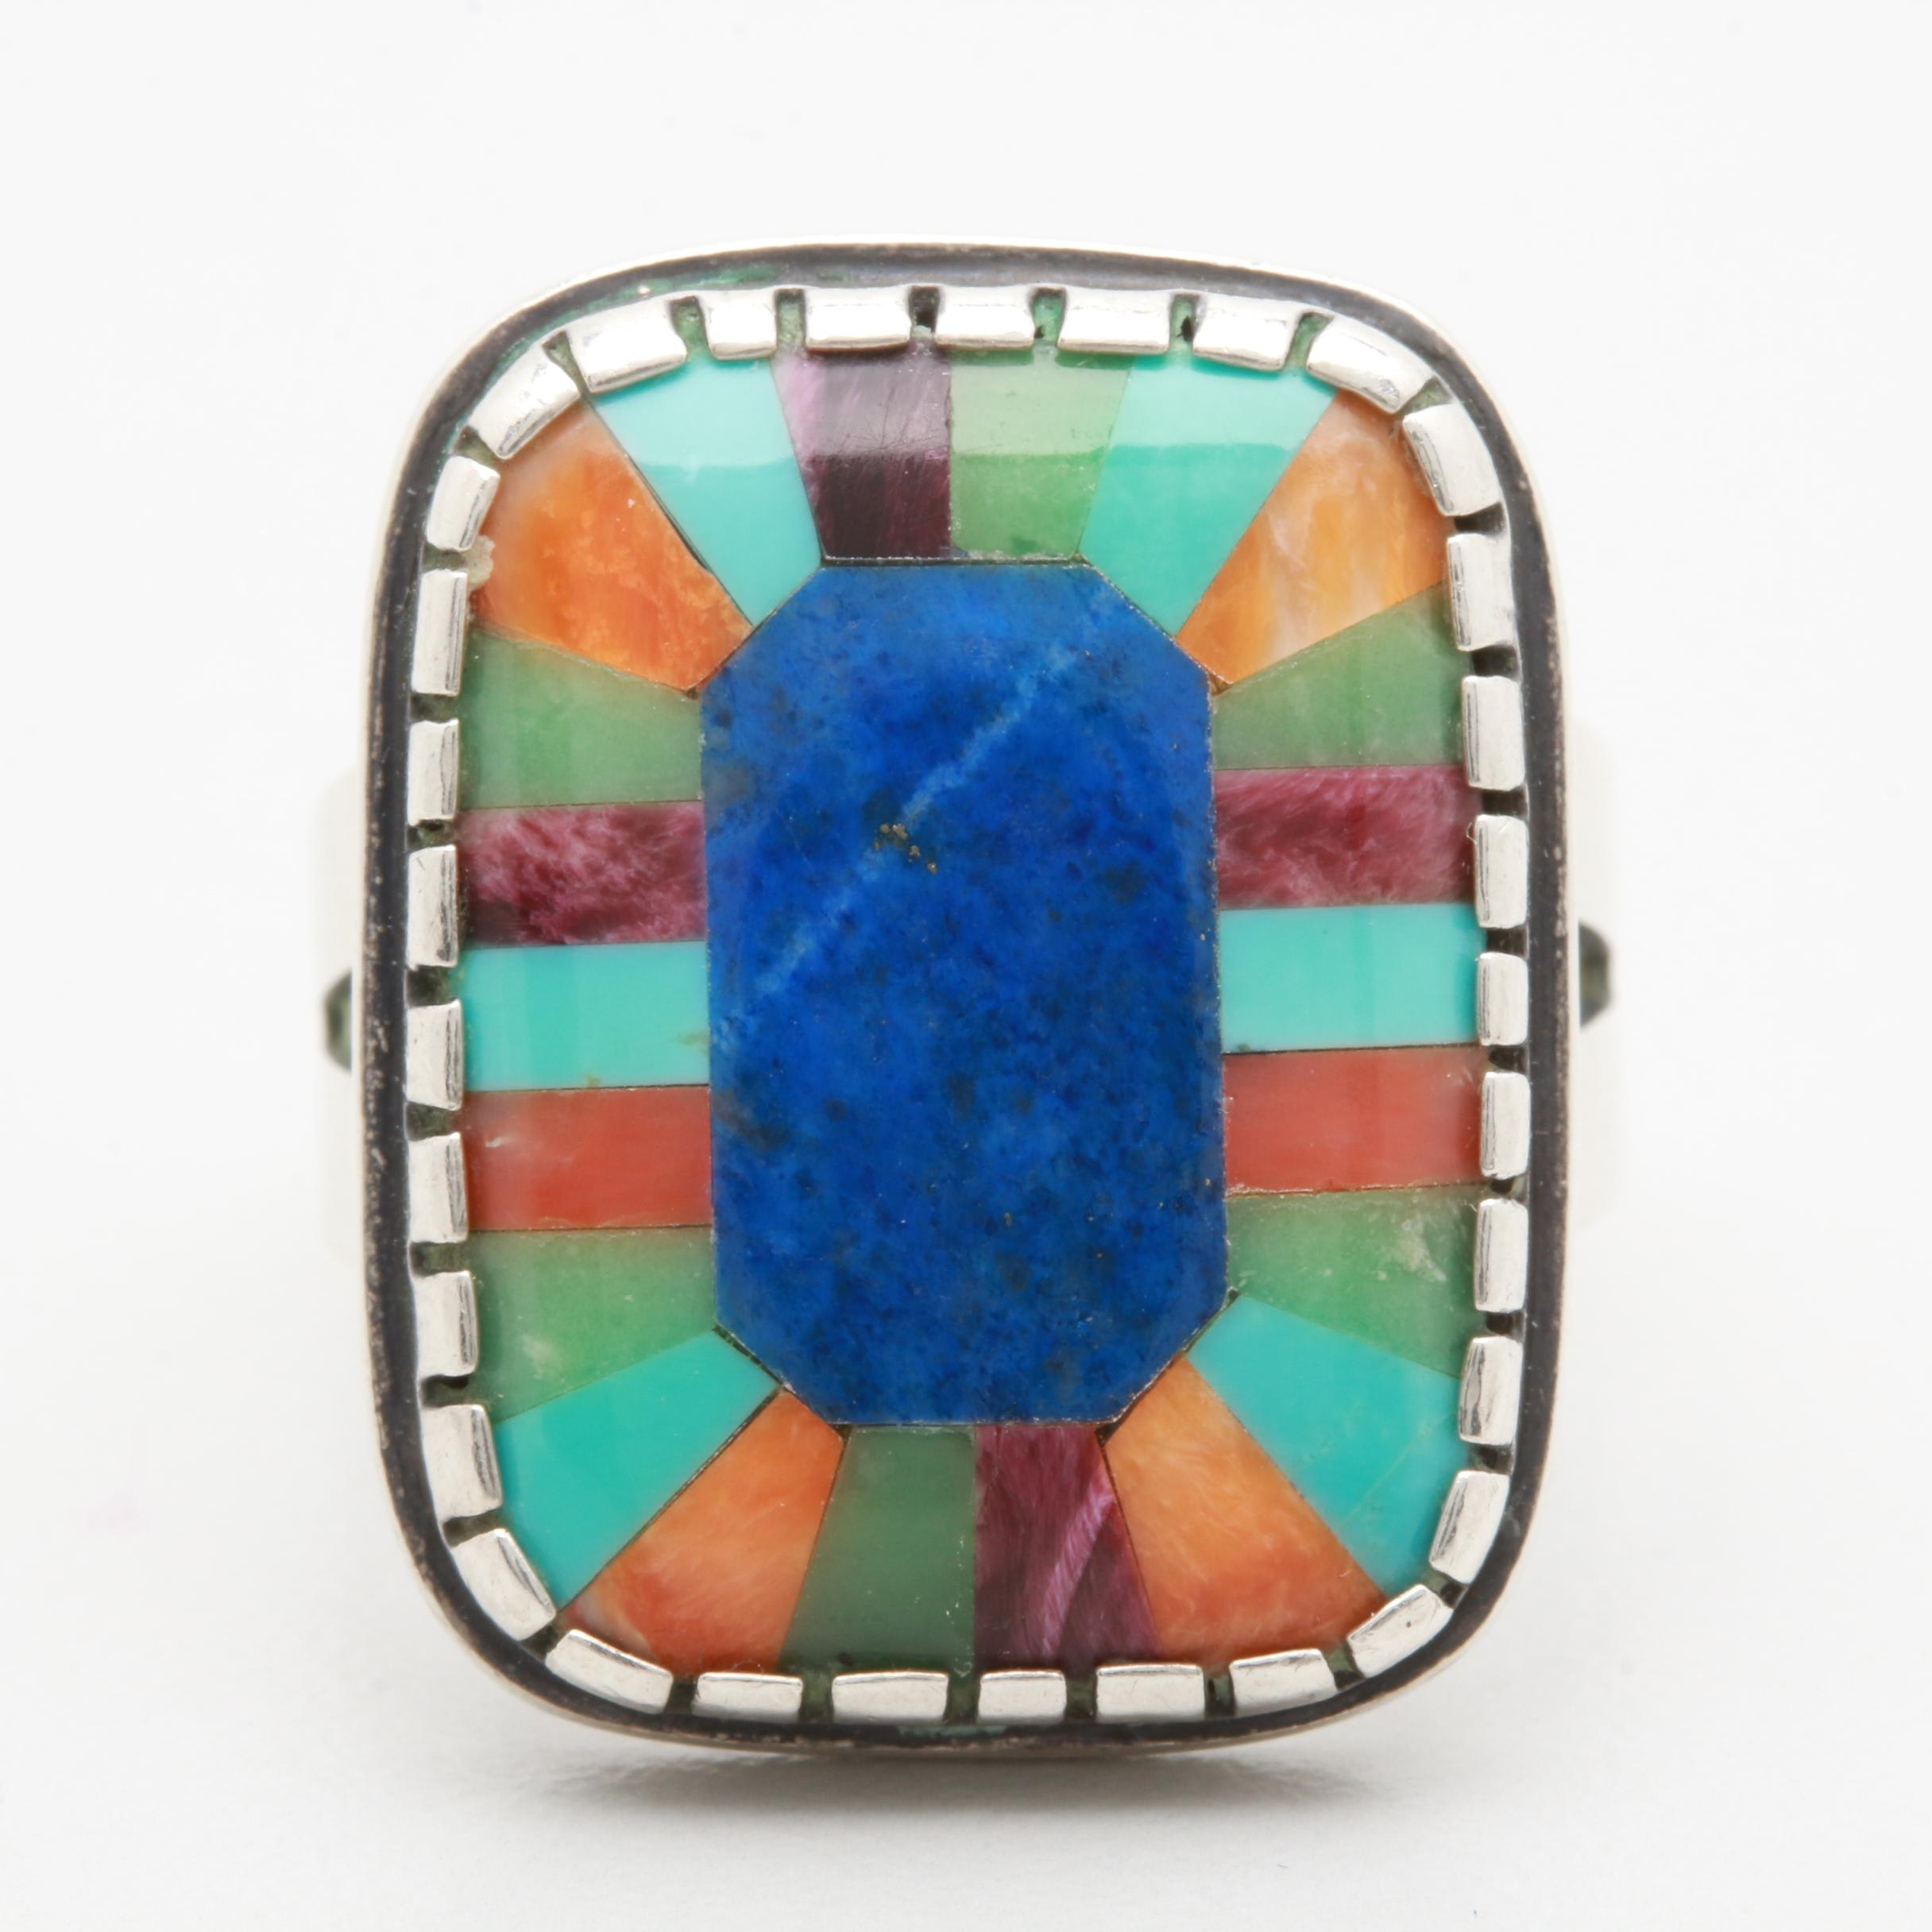 Relios by Carolyn Pollack Sterling Silver Inlay Ring Including Lapis Lazuli